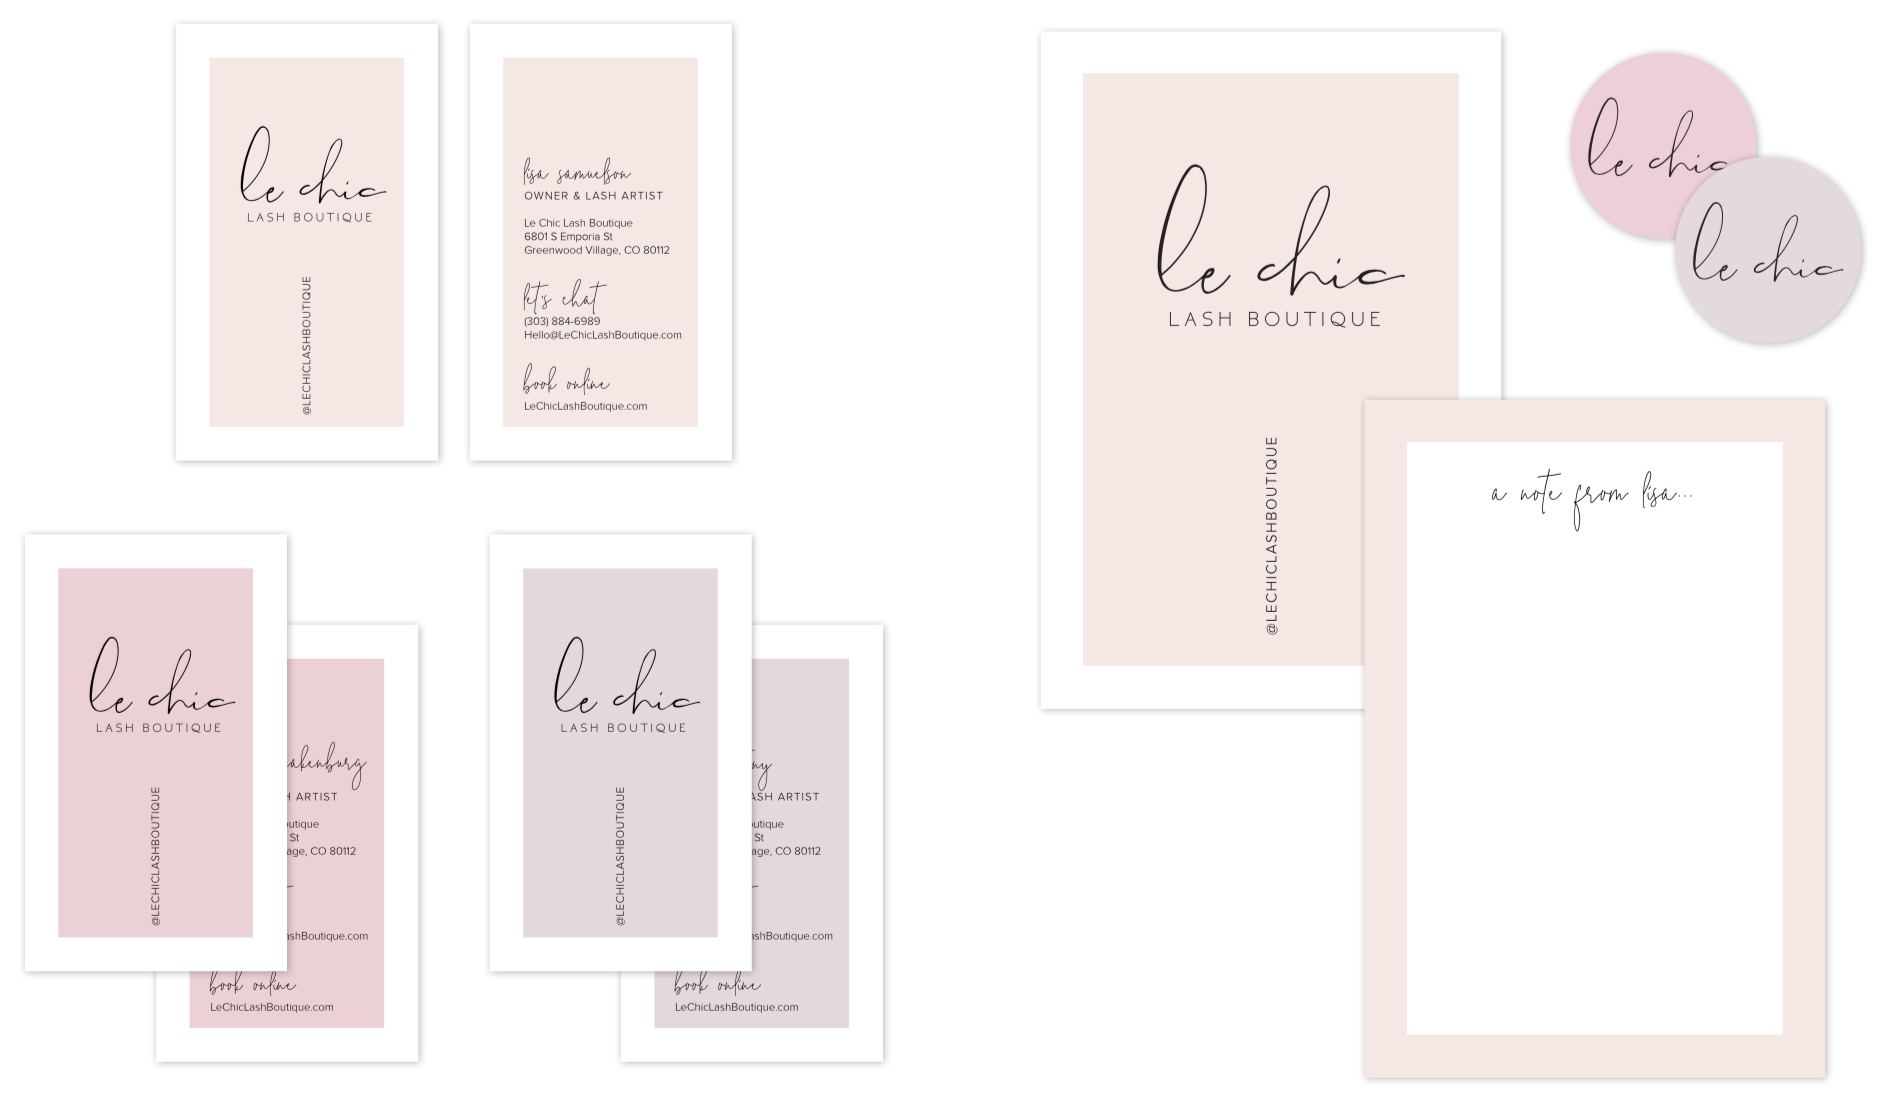 Stationery System for Le Chic Lash Boutique by Gretchen Kamp